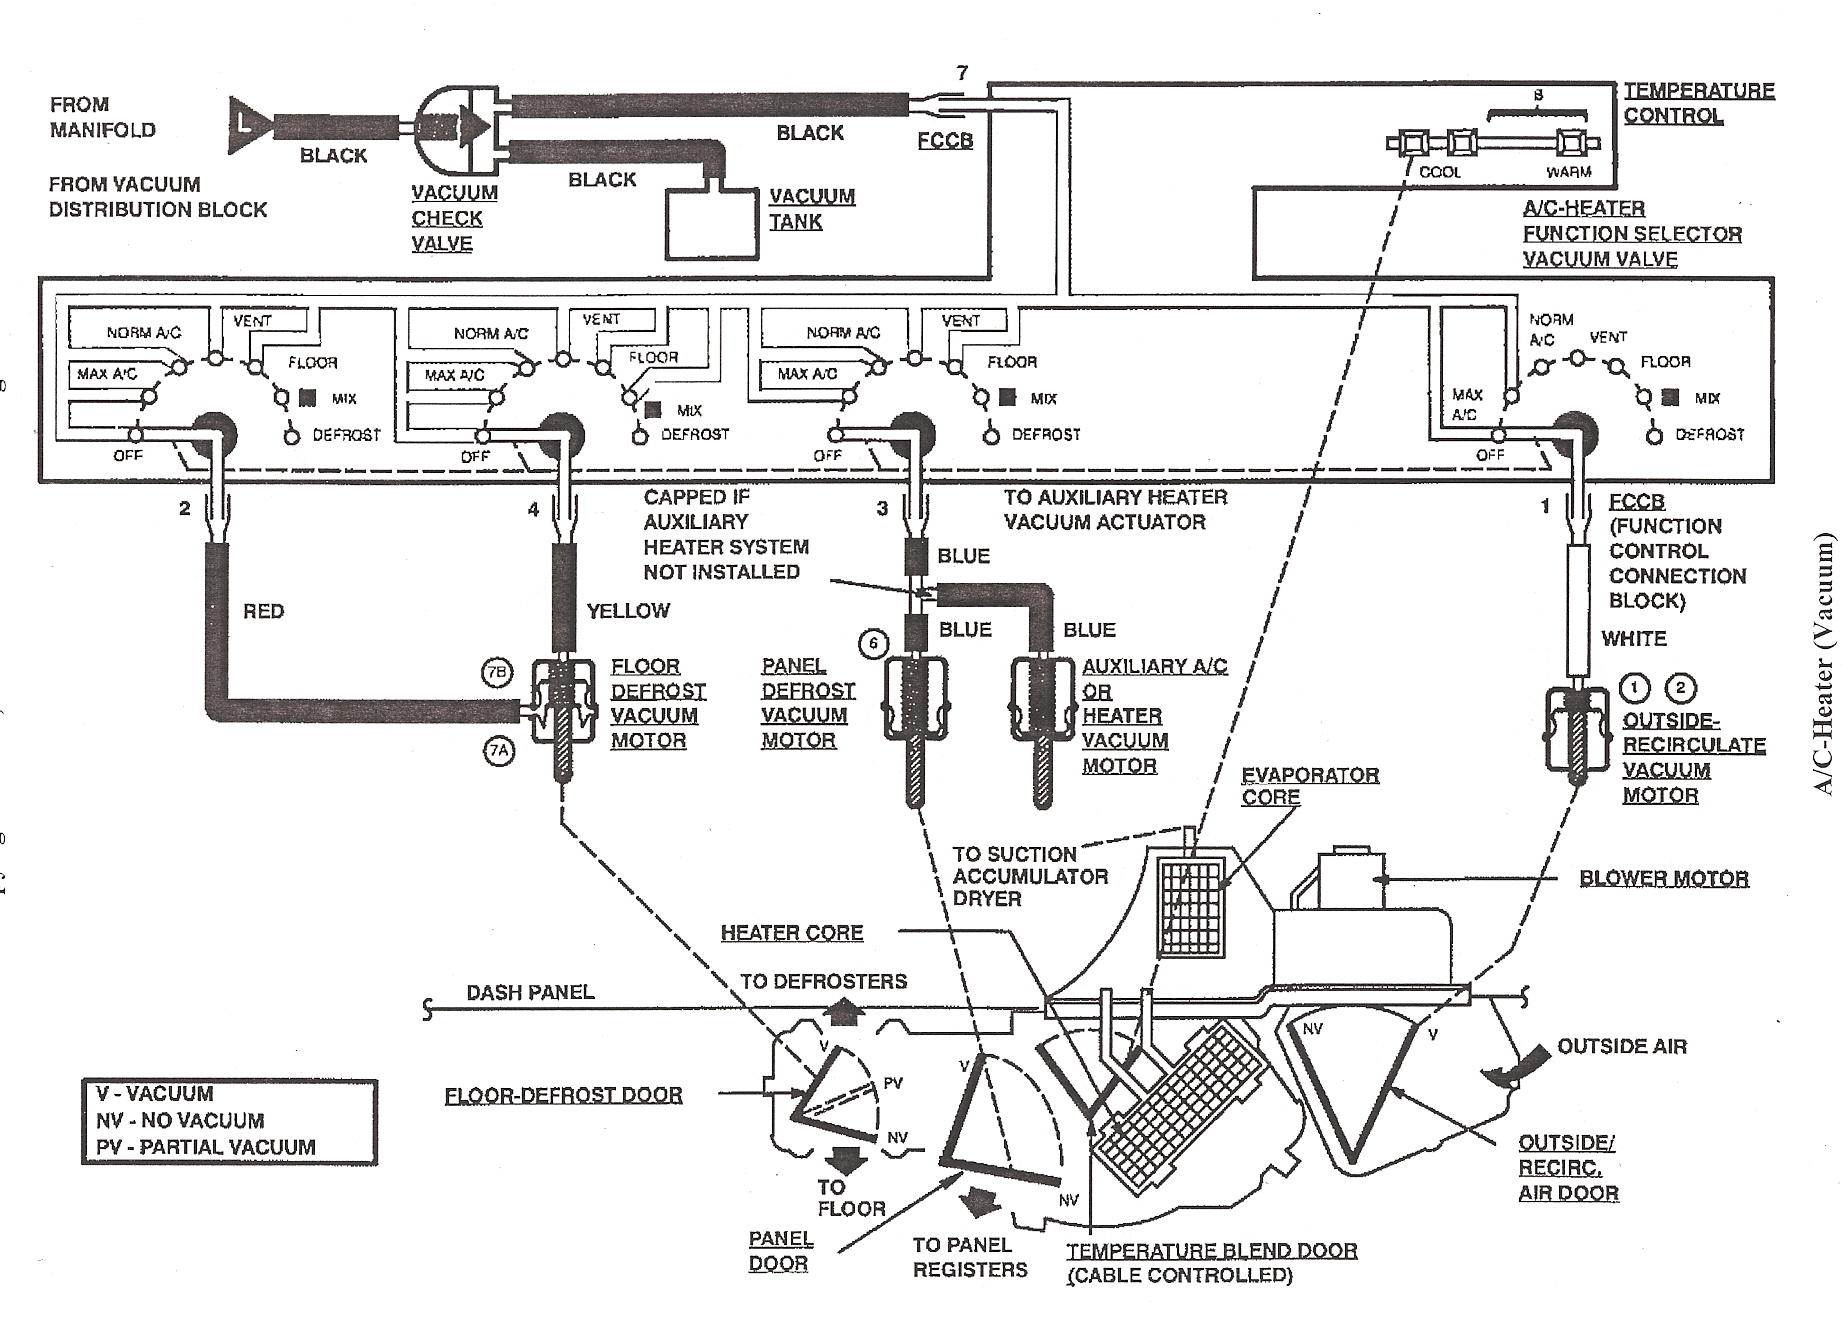 2013 ford edge engine vacuum diagrams  u2022 wiring diagram for